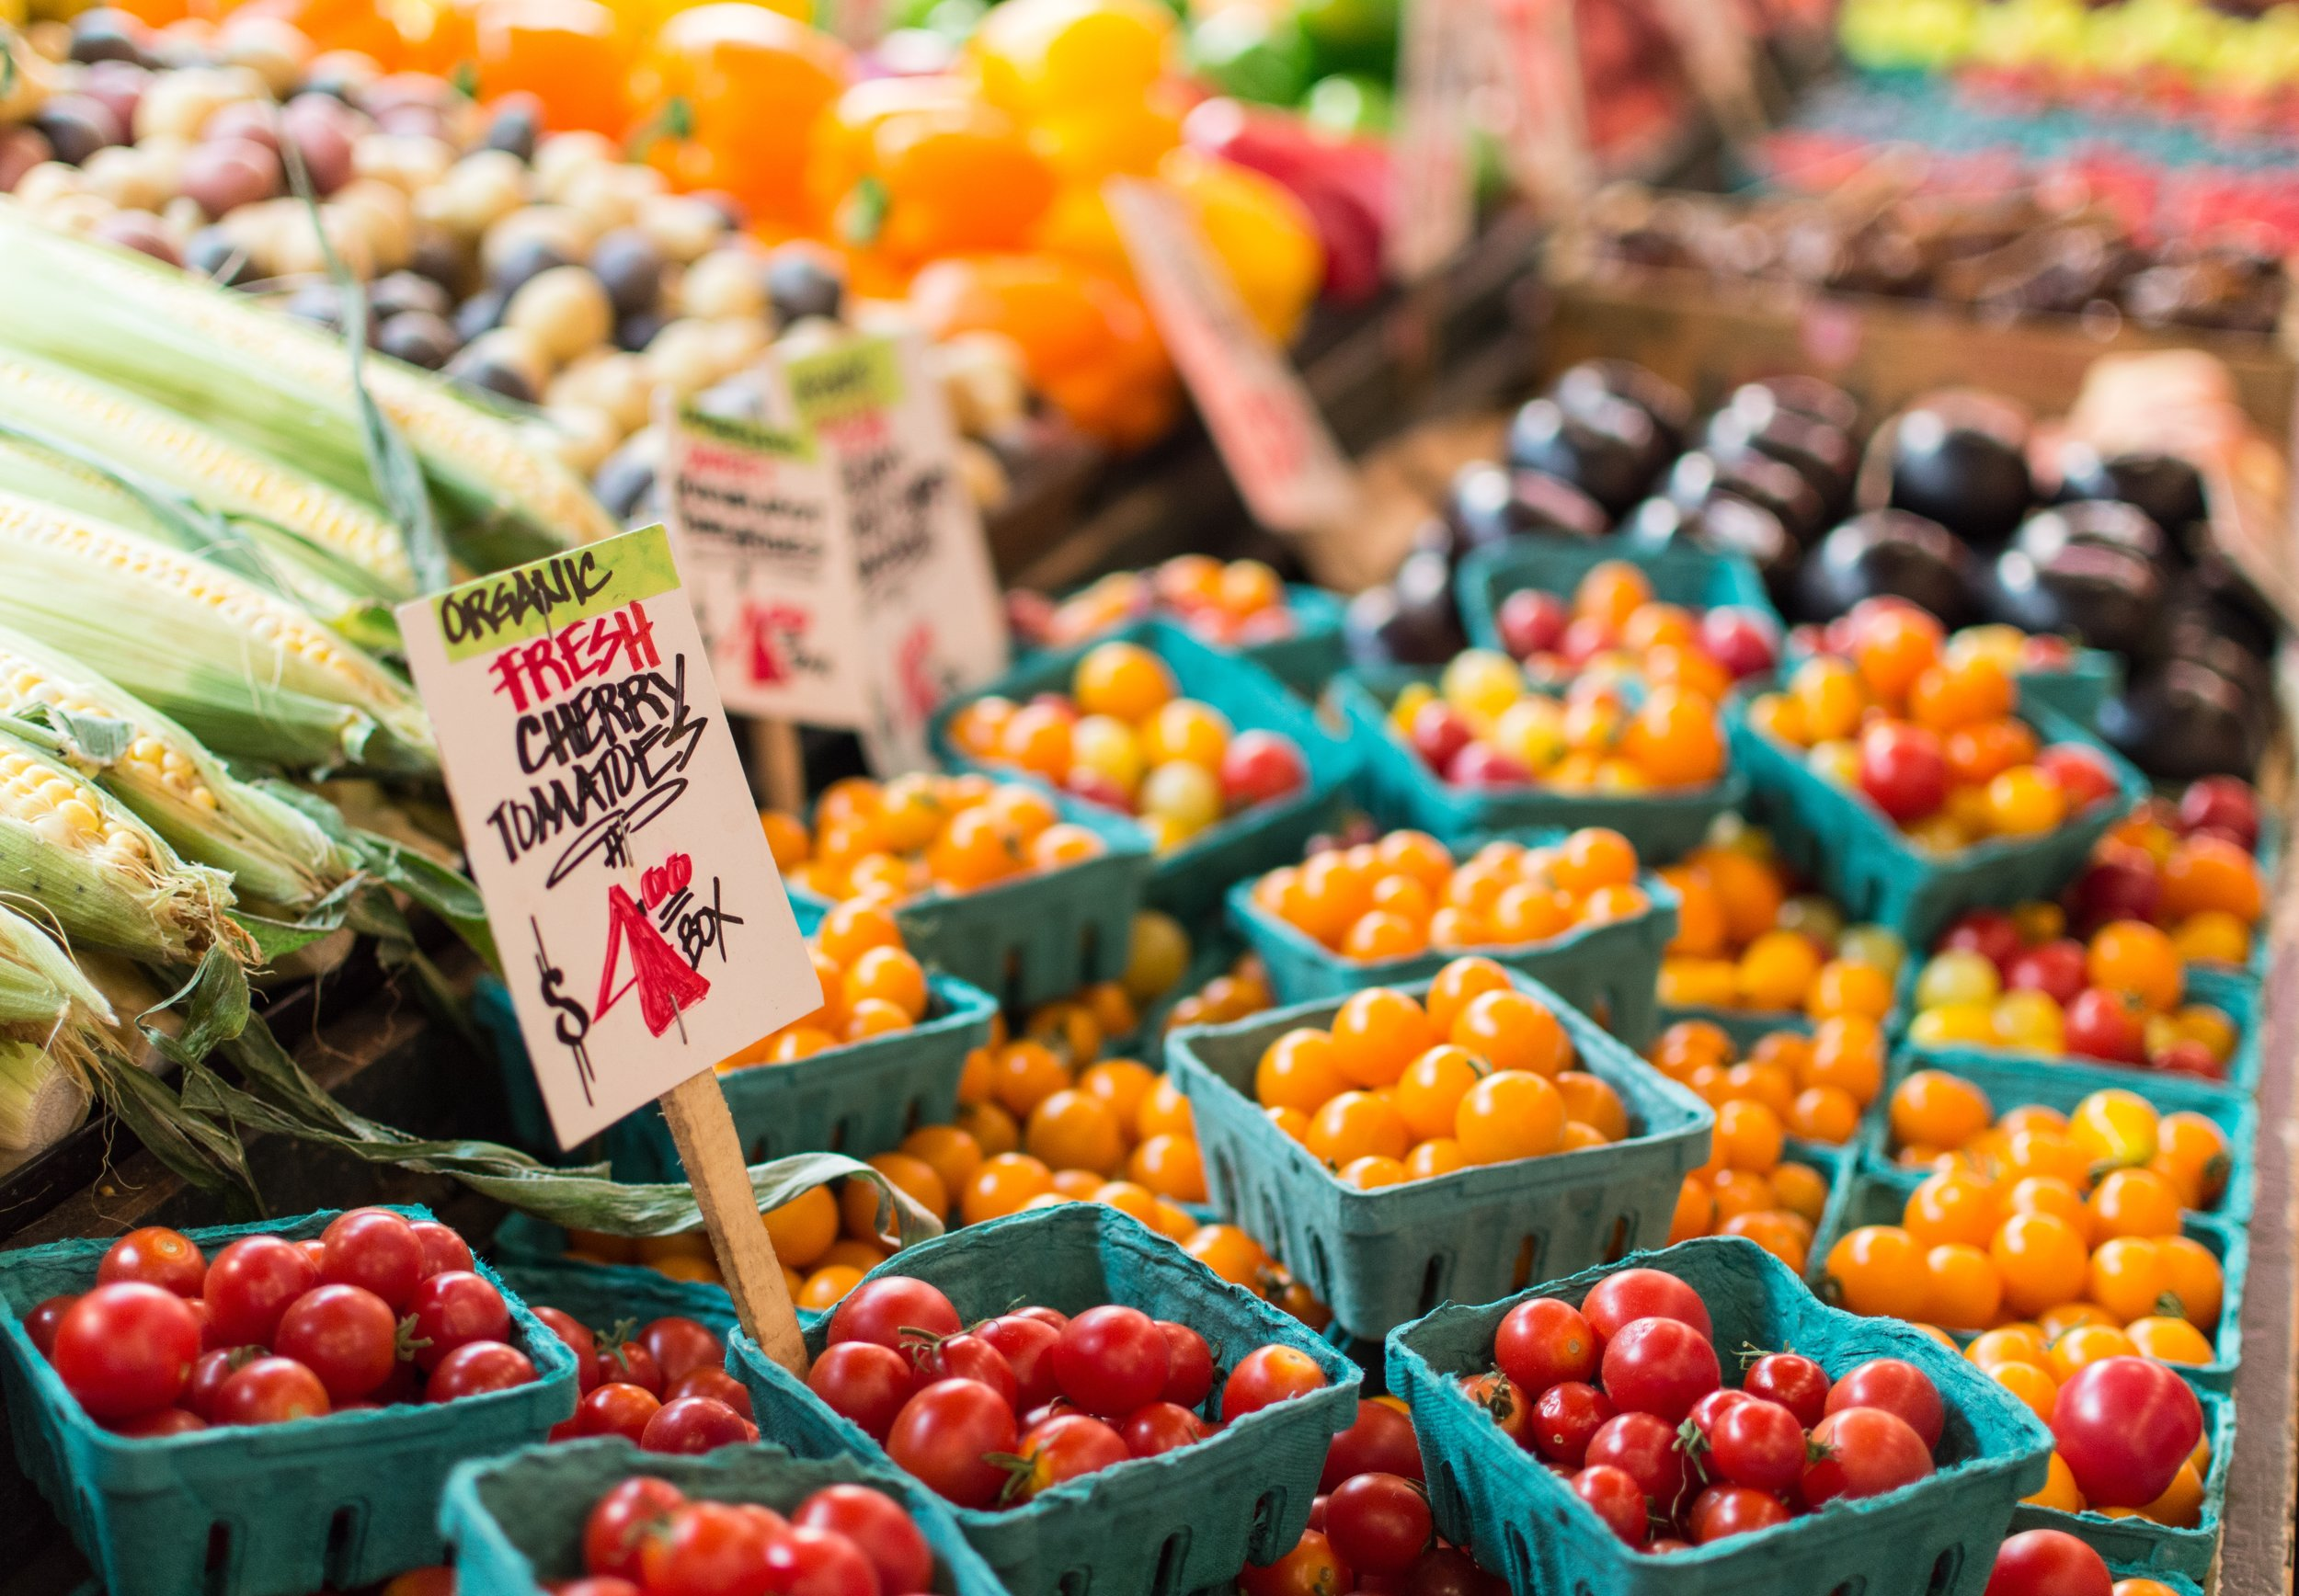 Shopping at your local farmers' market is a unique opportunity to engage and become familiar with the food culture in your town. Source: Unsplash.com